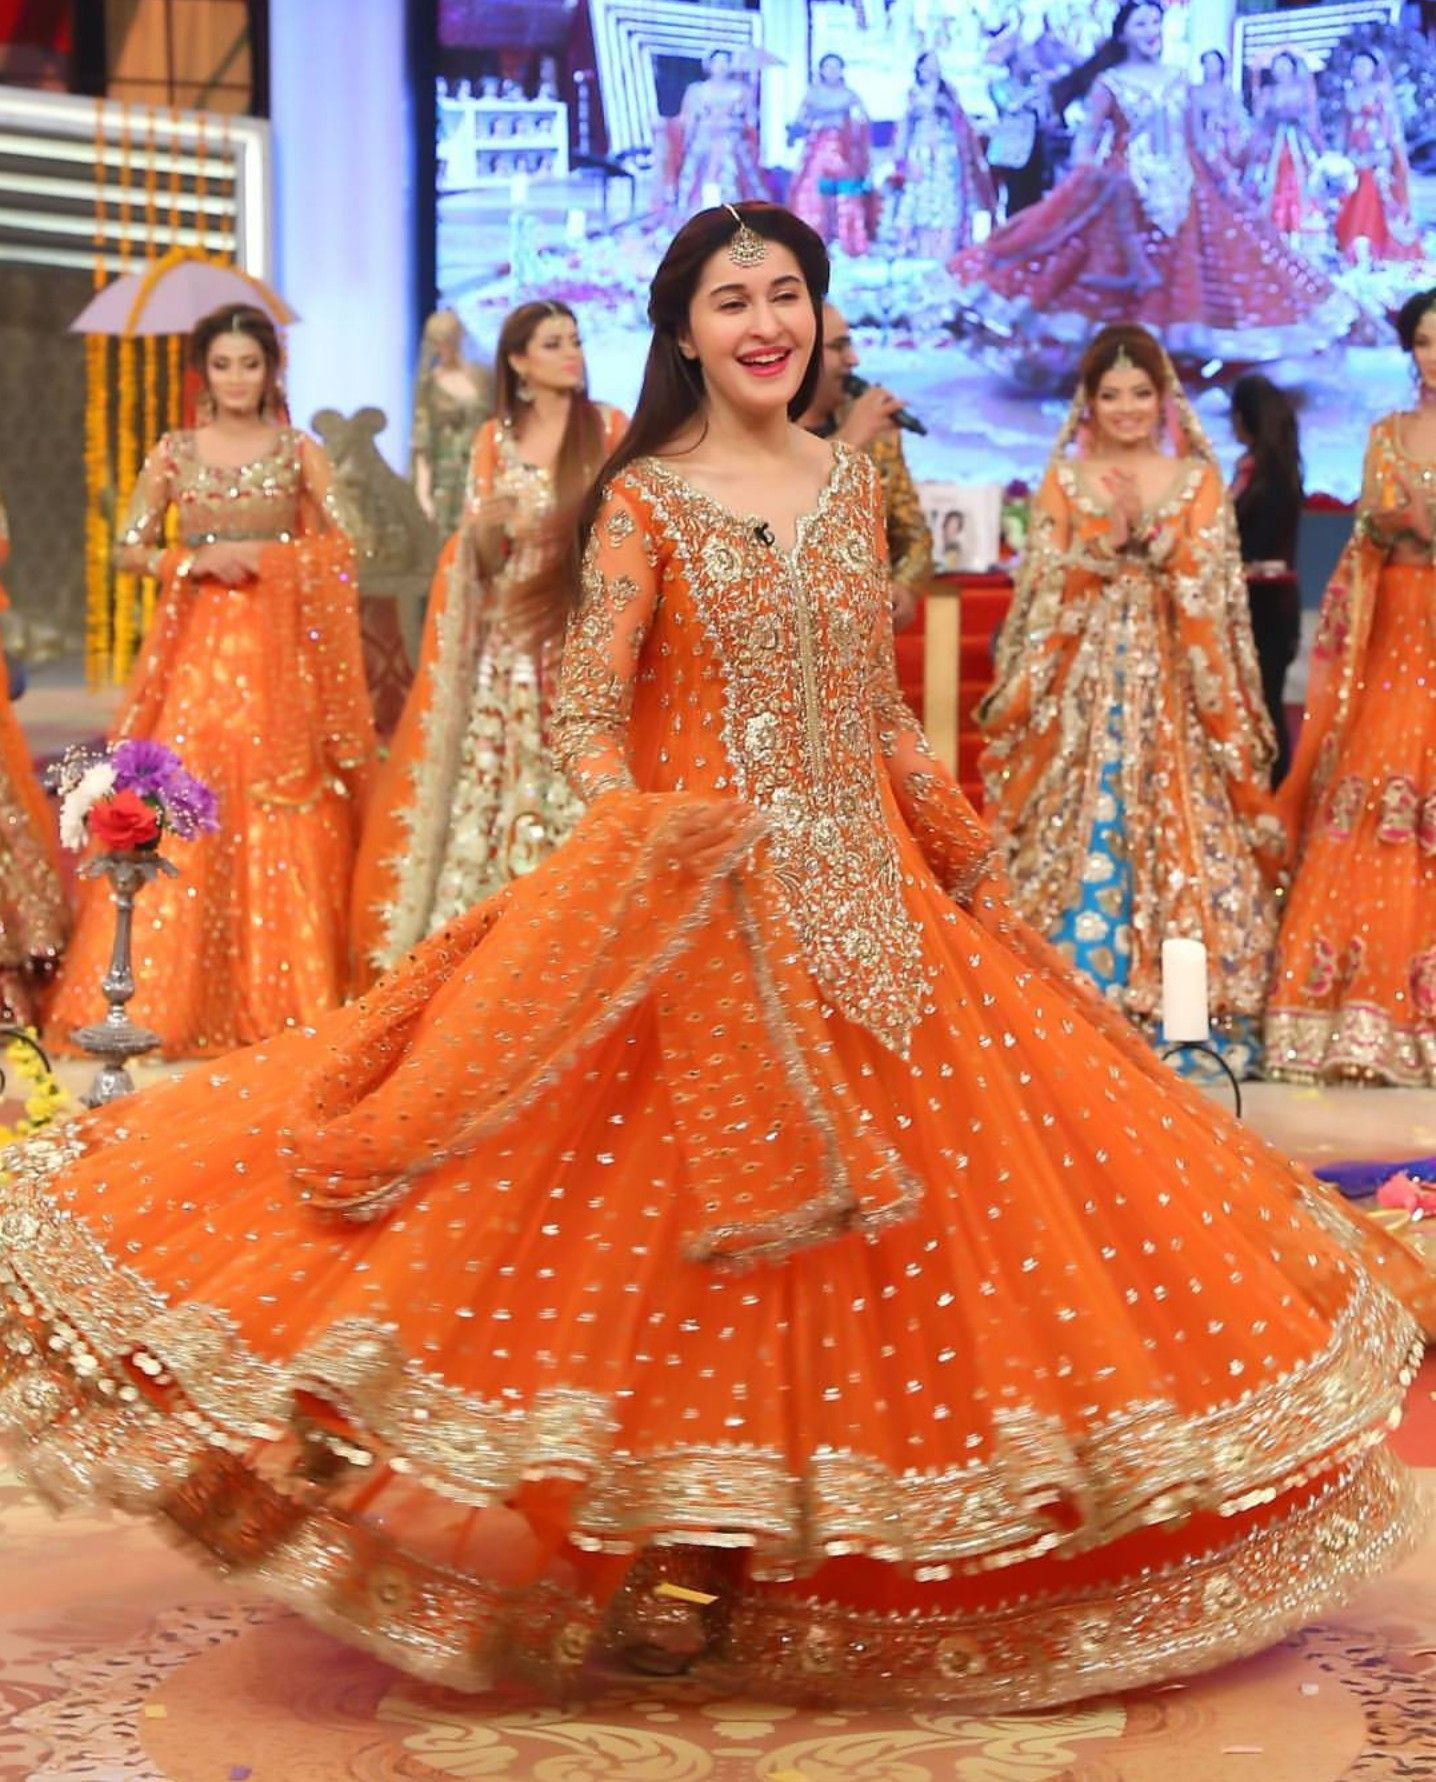 Pin By Sherina Khan On Party + Bridal Wear